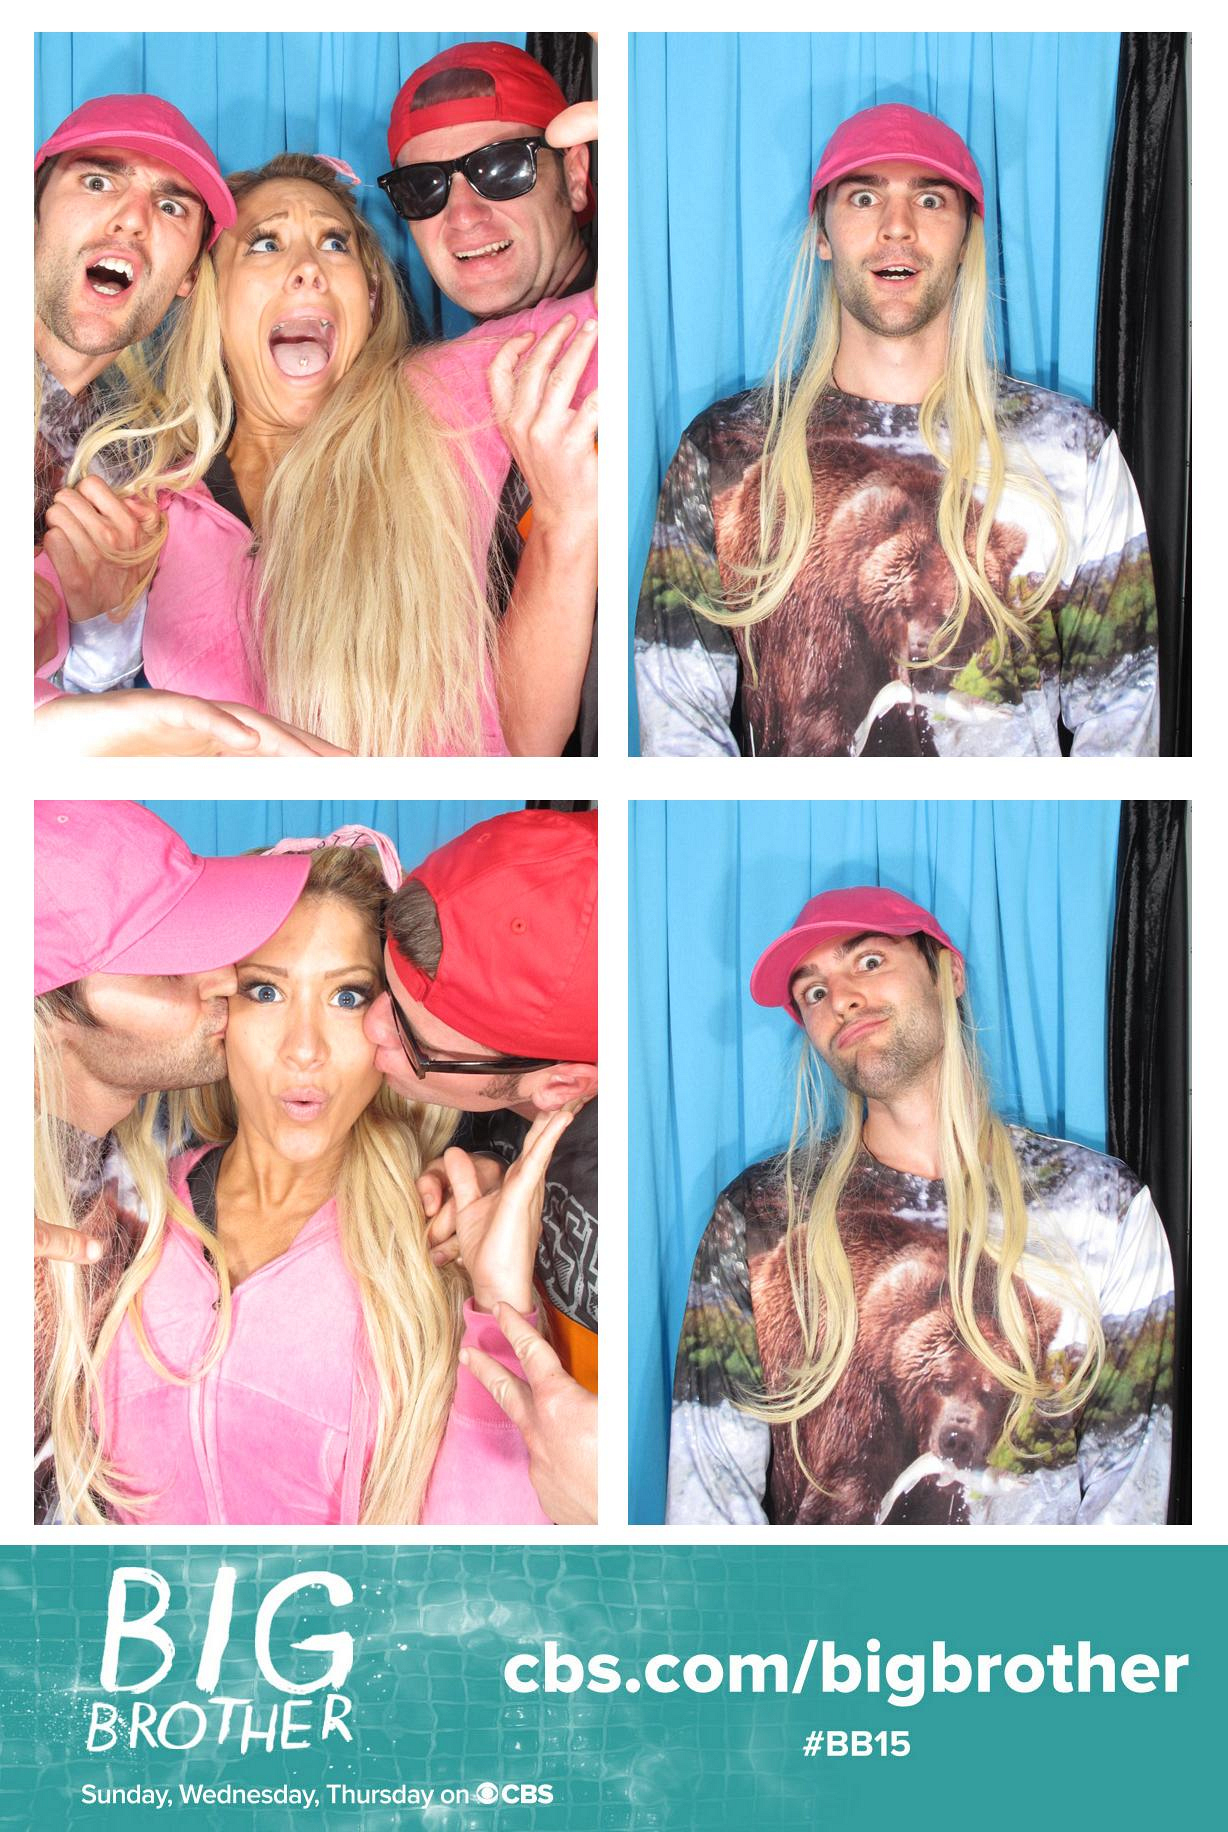 Having Fun in the Photo Booth